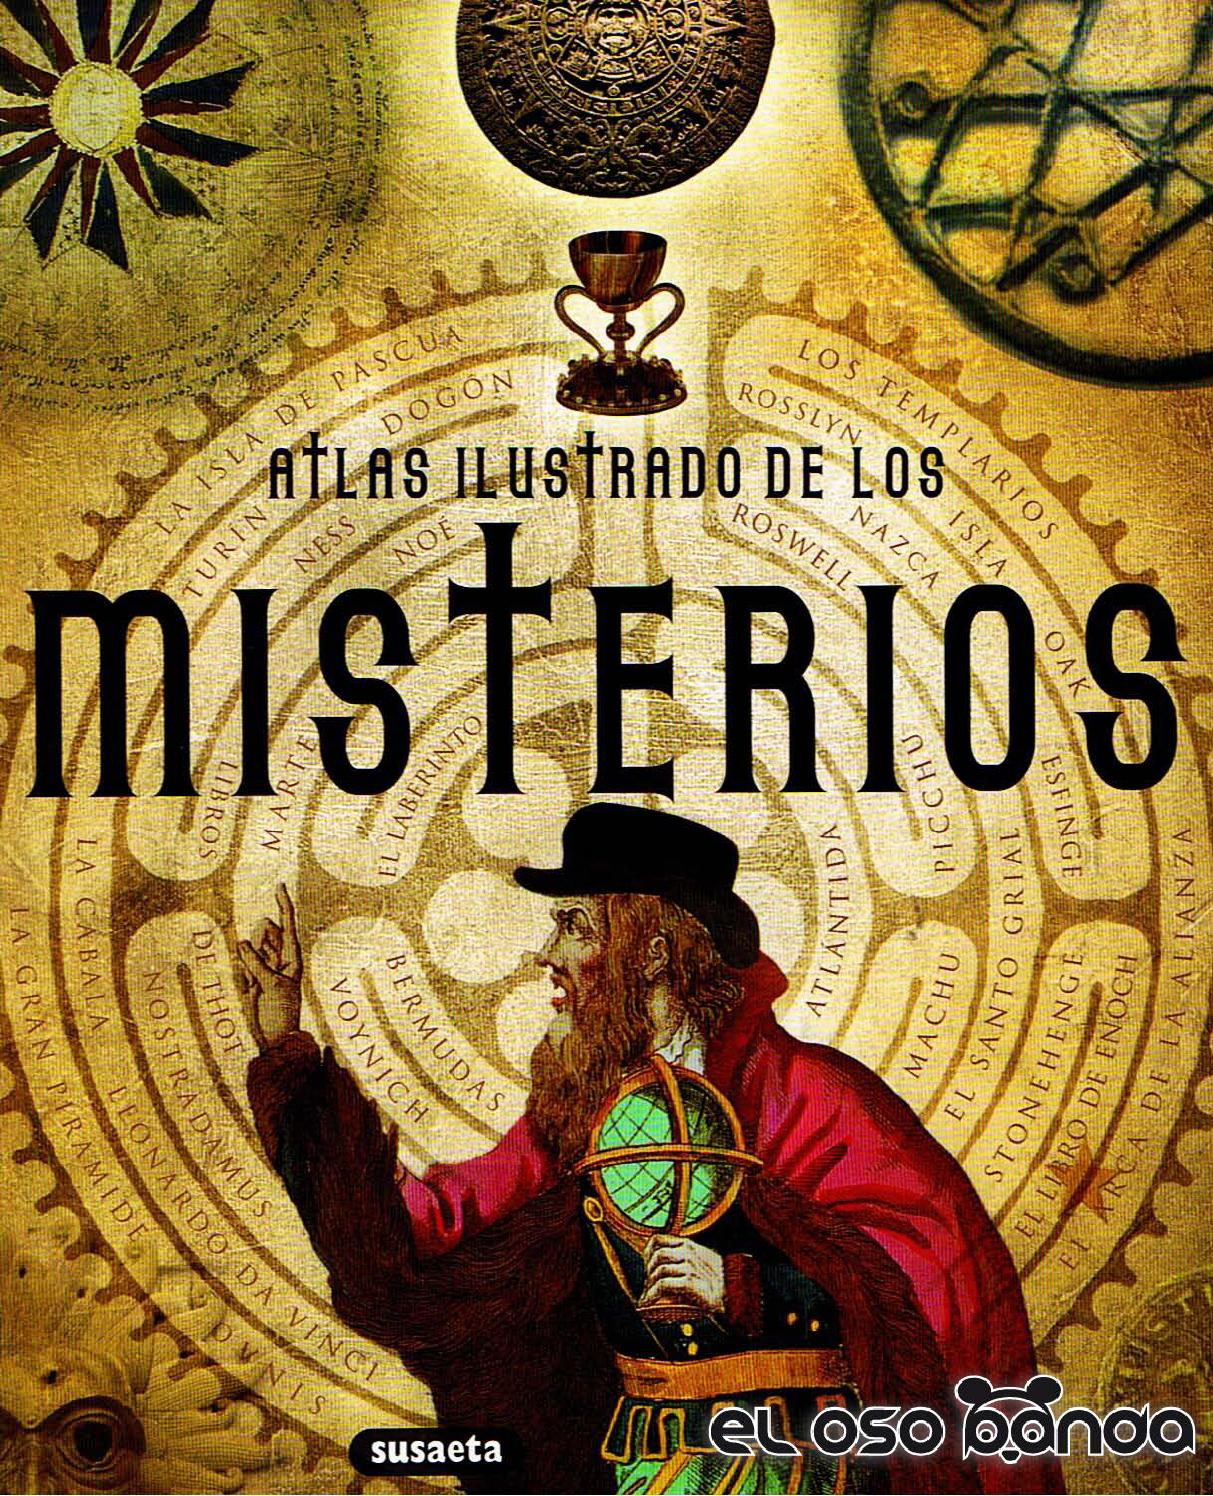 Atlas ilustrado de los misterios editorial susaeta by for Editorial susaeta